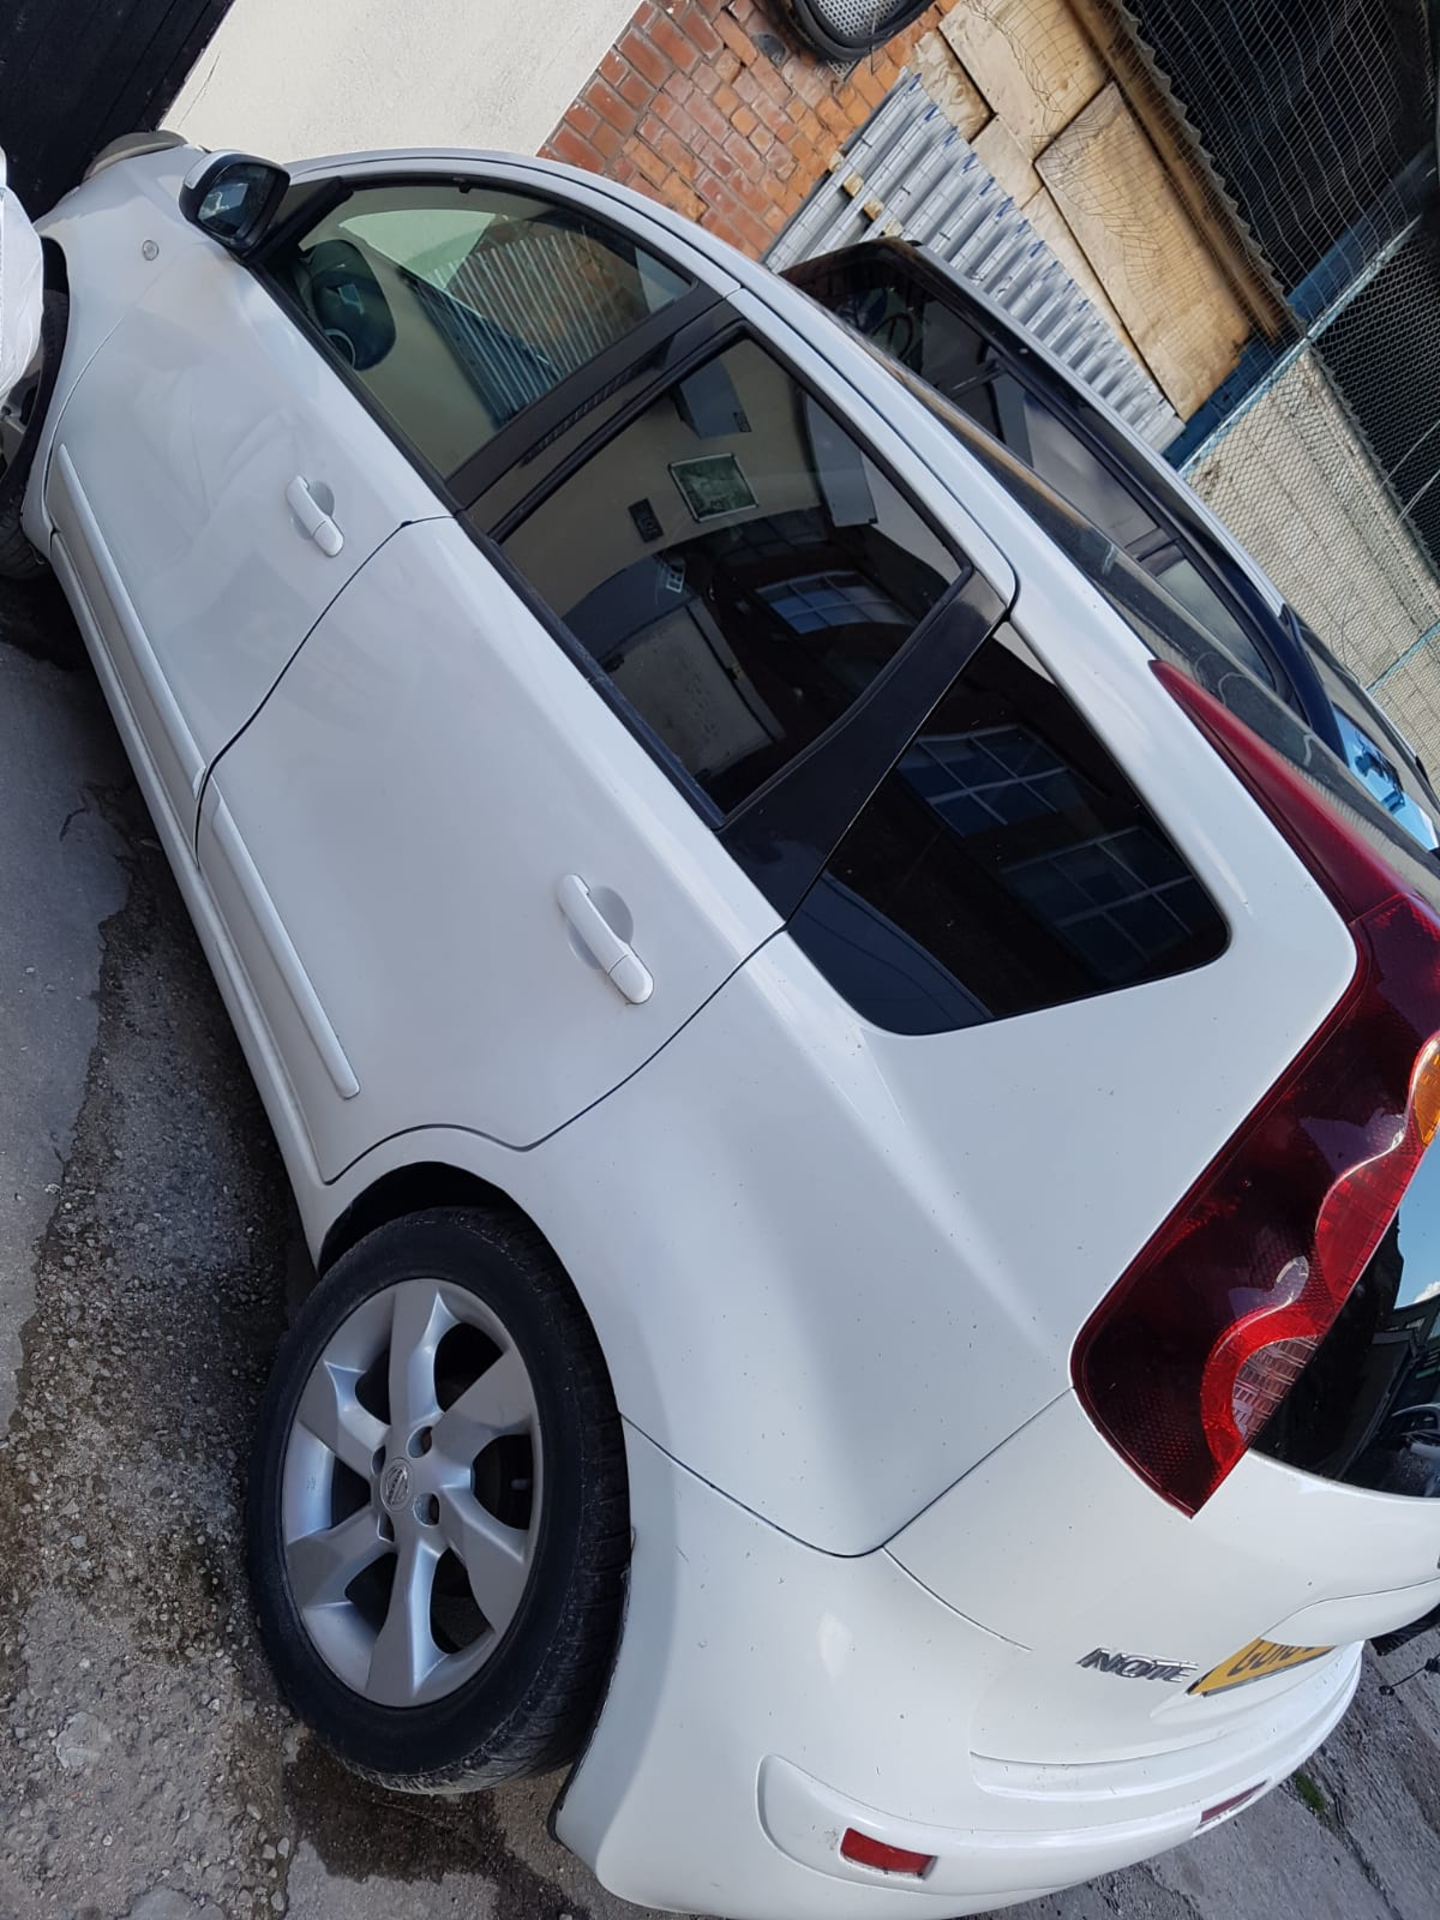 WHITE NISSAN NOTE 2010 GU10 BVL 61000 MILES COLLECTION MANCHESTER